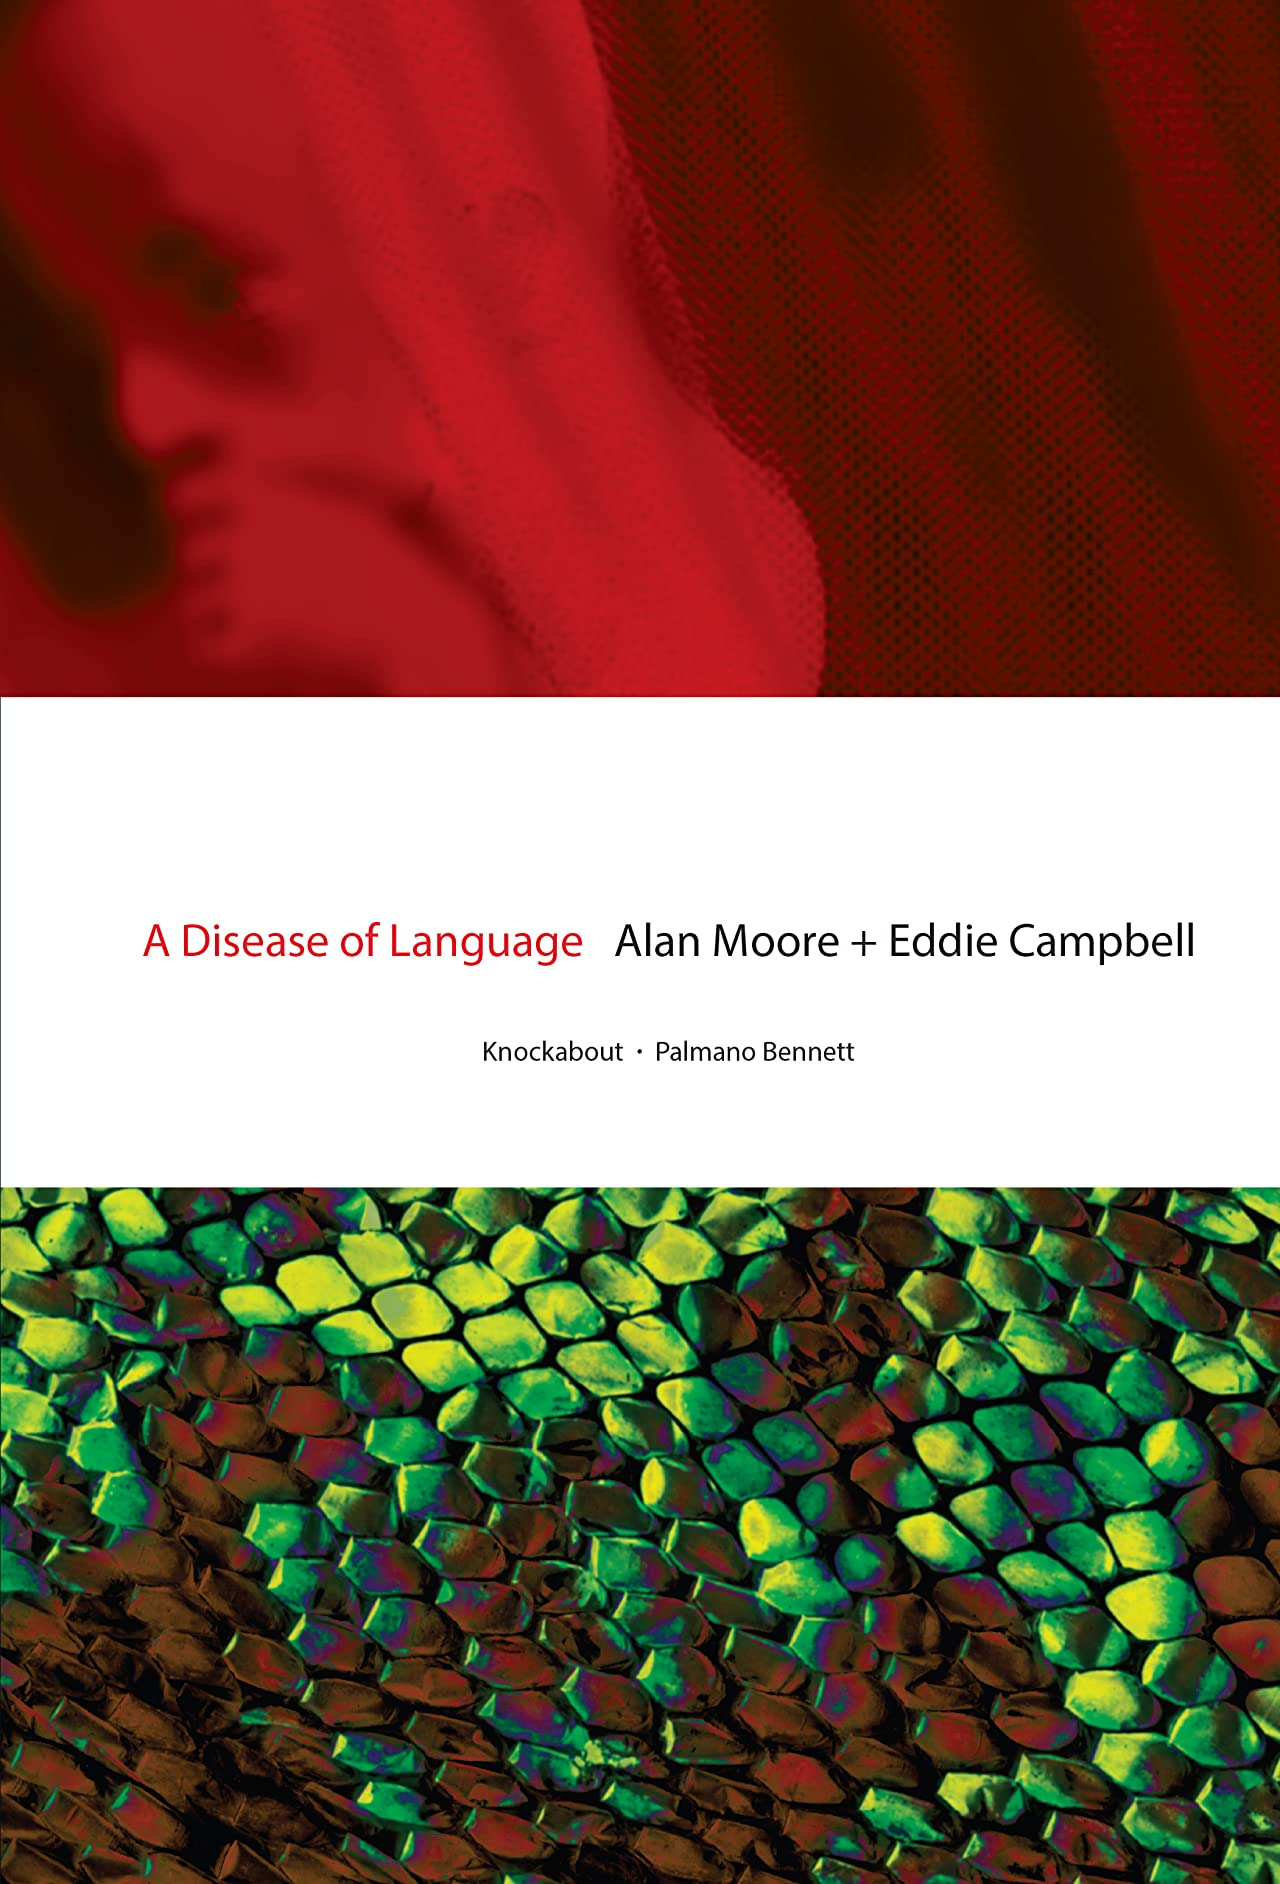 A Disease of Language